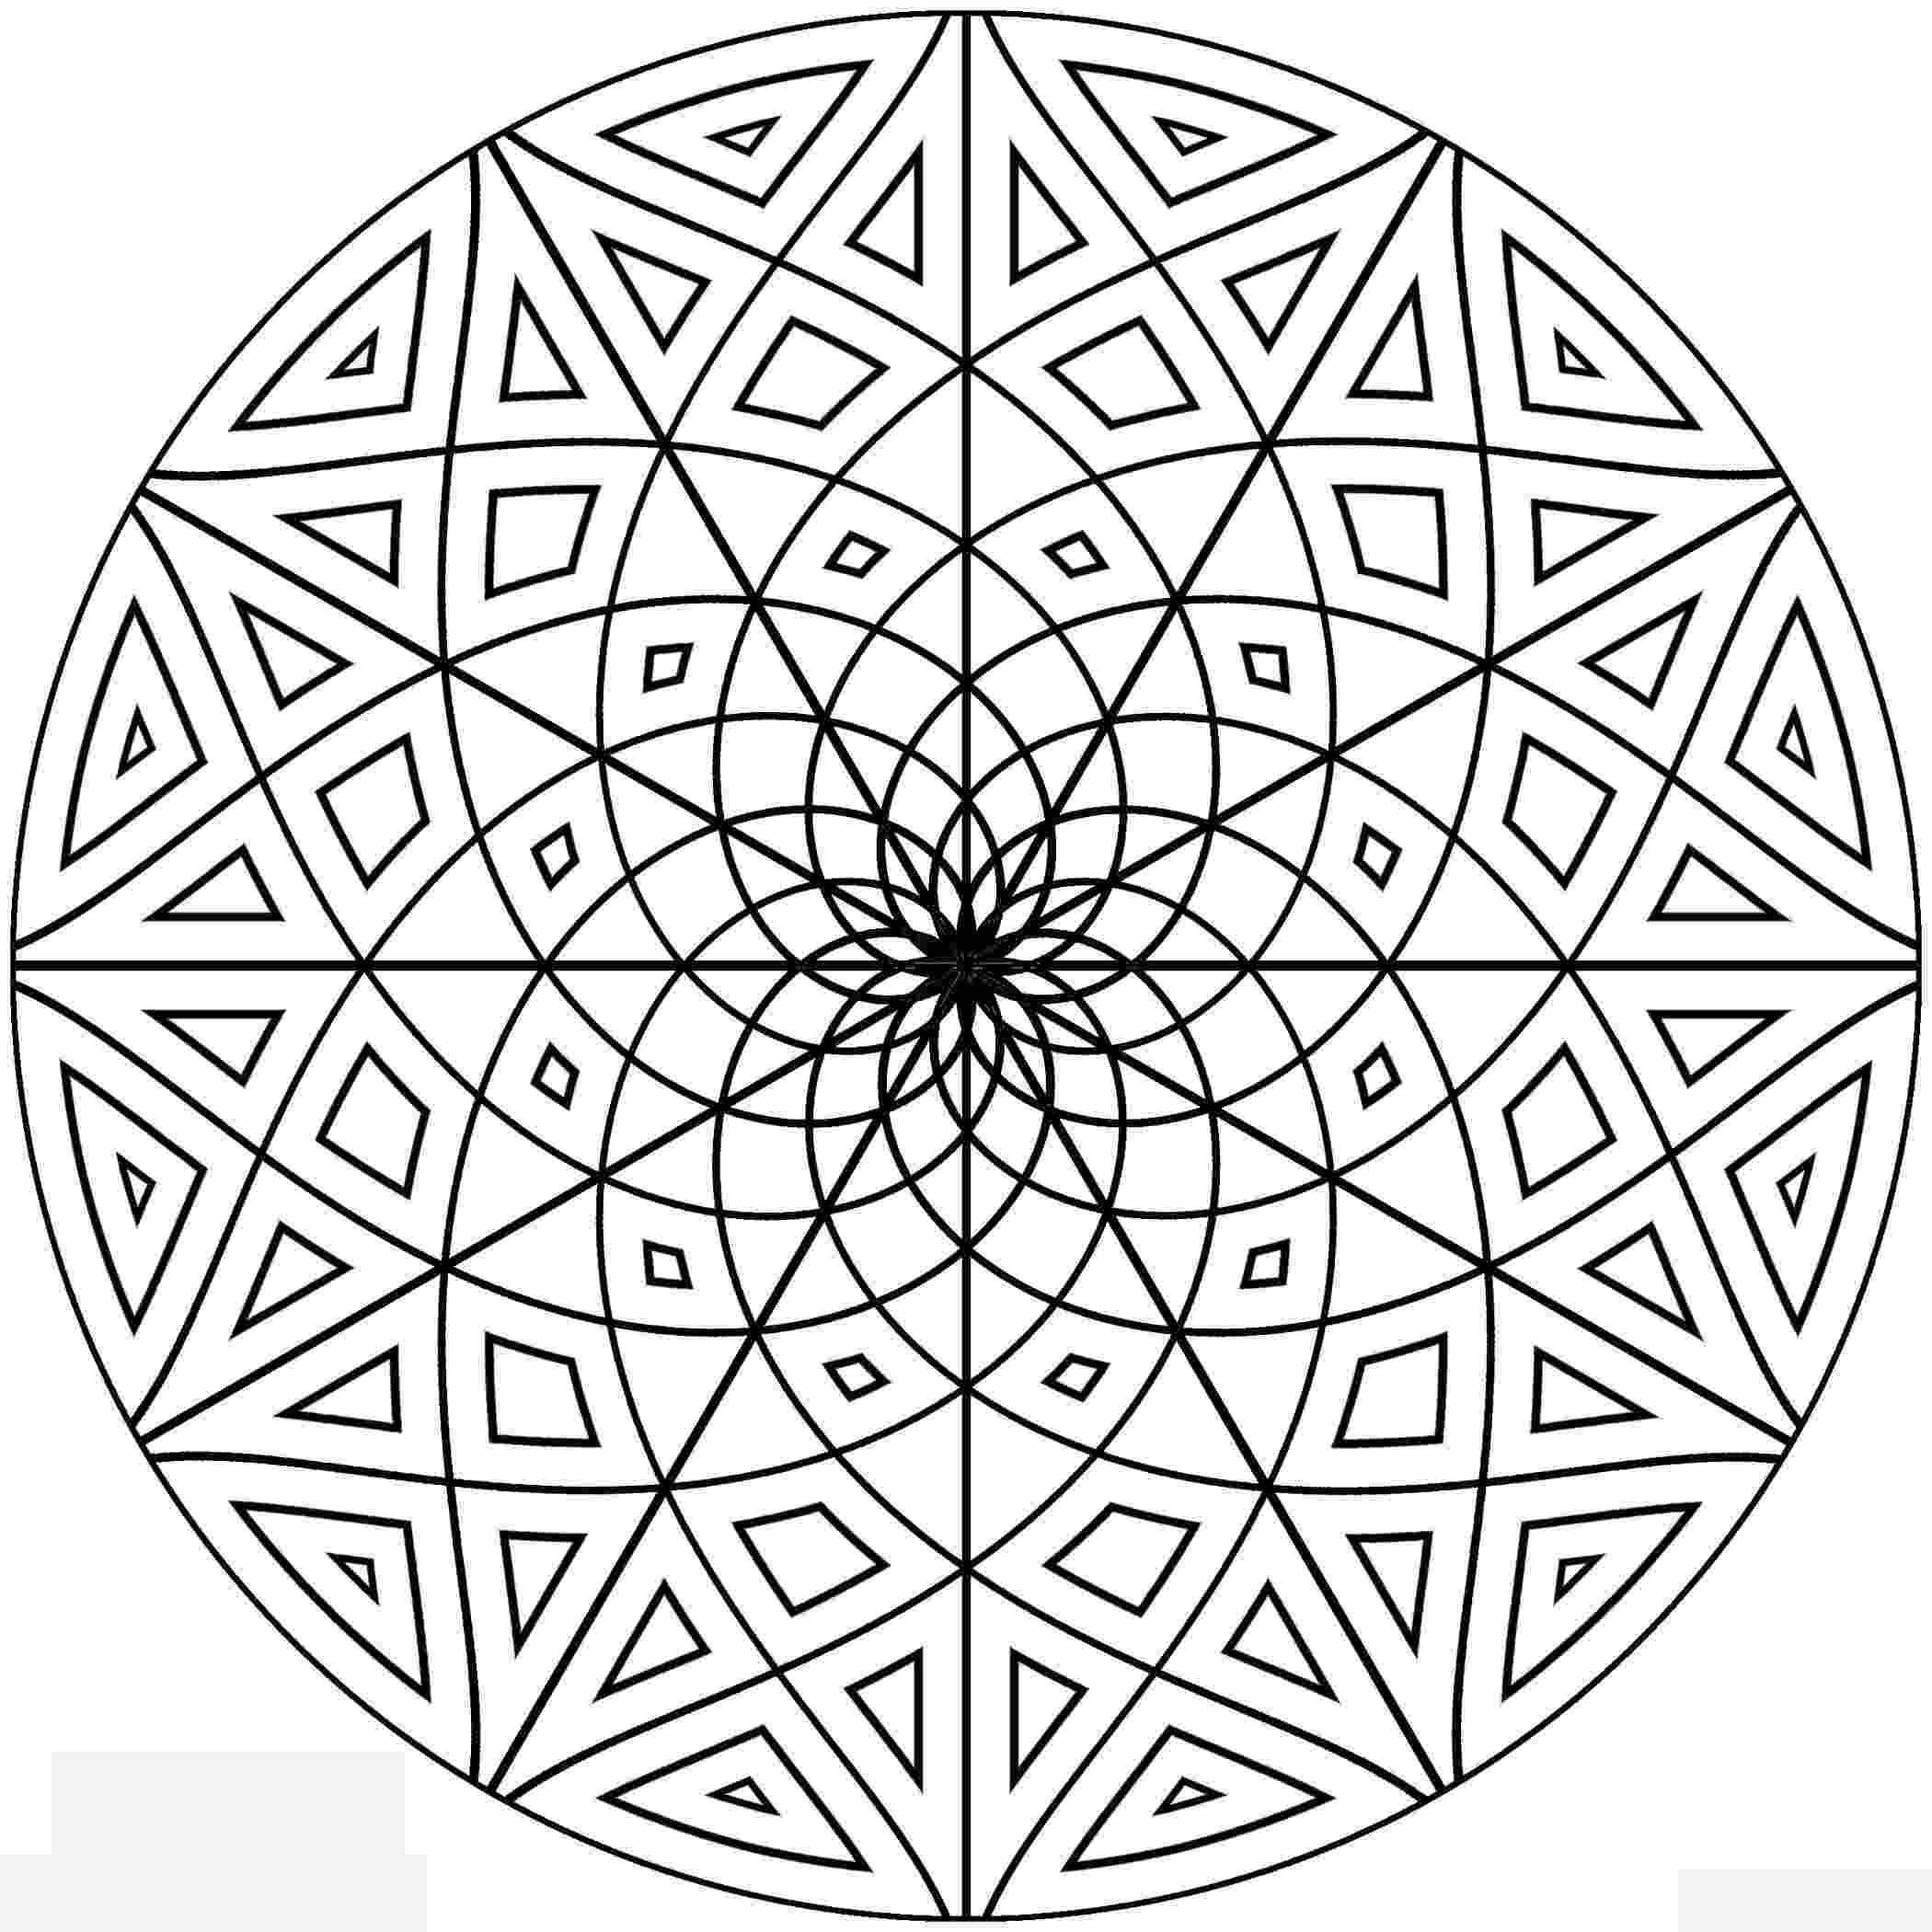 colouring pages of patterns colouring designs thelinoprinter of colouring pages patterns